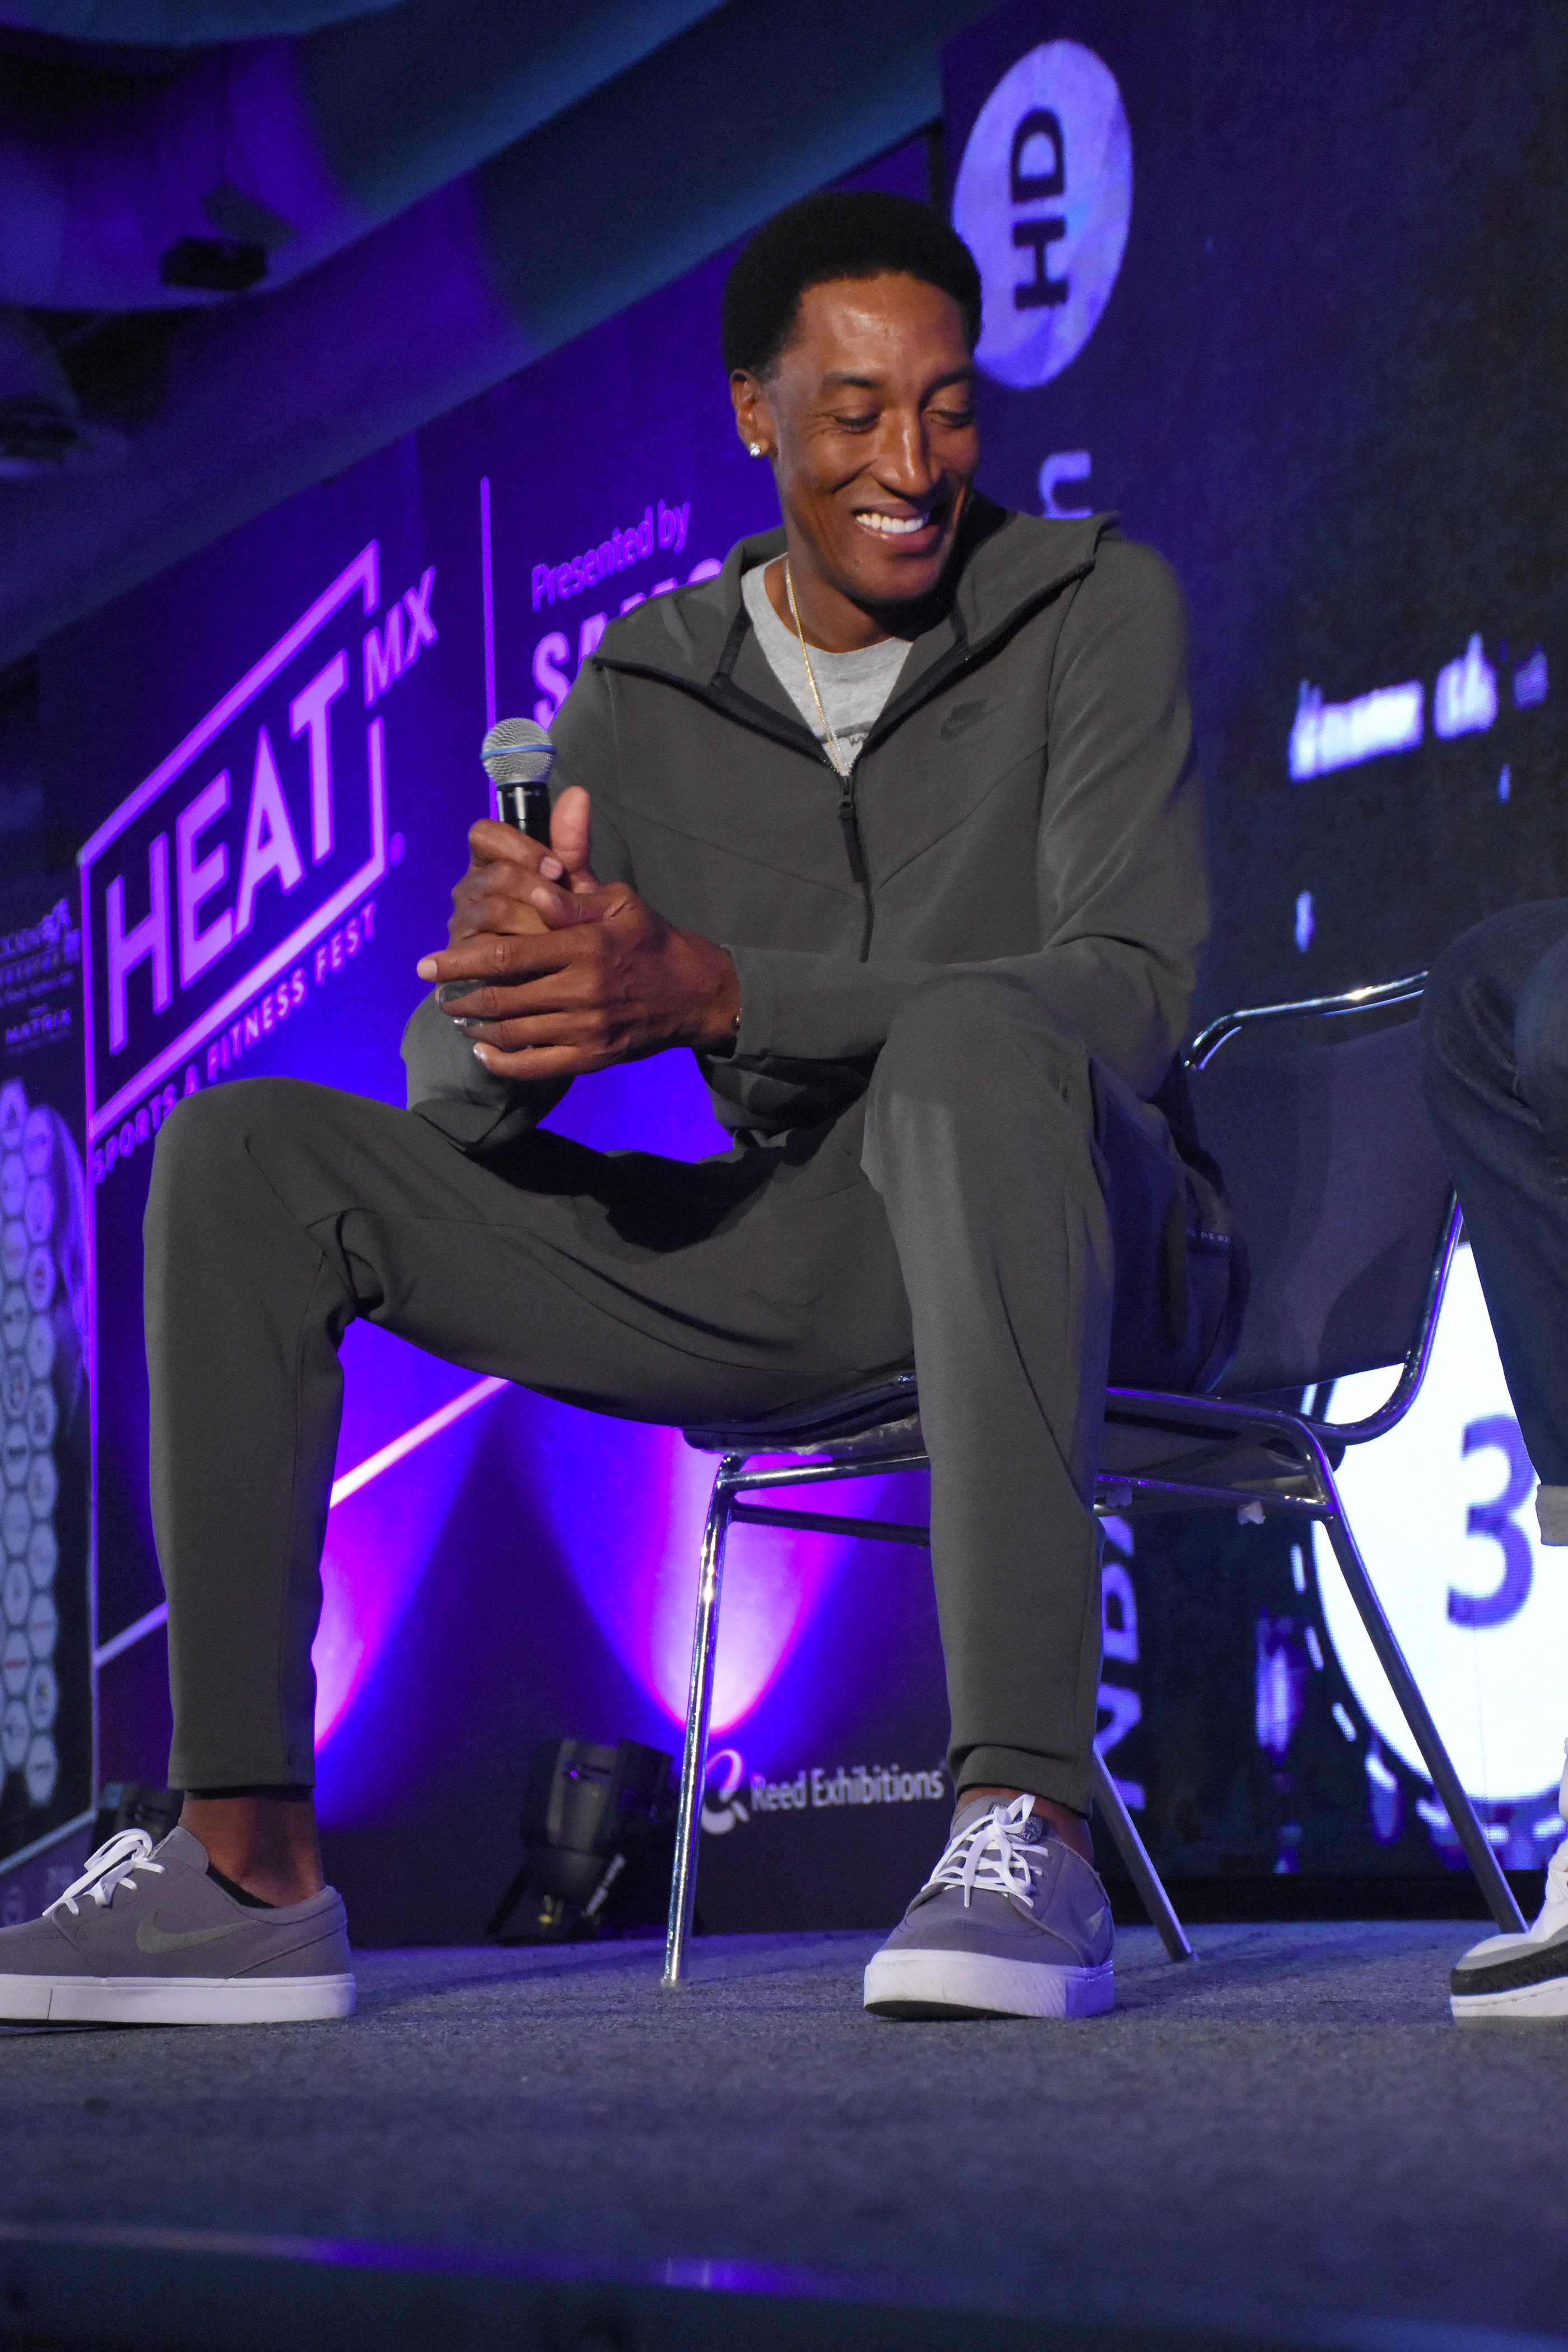 Image Credits: Getty Images / Carlos Tischler | Former NBA player Scottie Pippen speaks during a press conference as part of Heat Fest at Citibanamex Center on September 01, 2018 in Mexico City, Mexico.